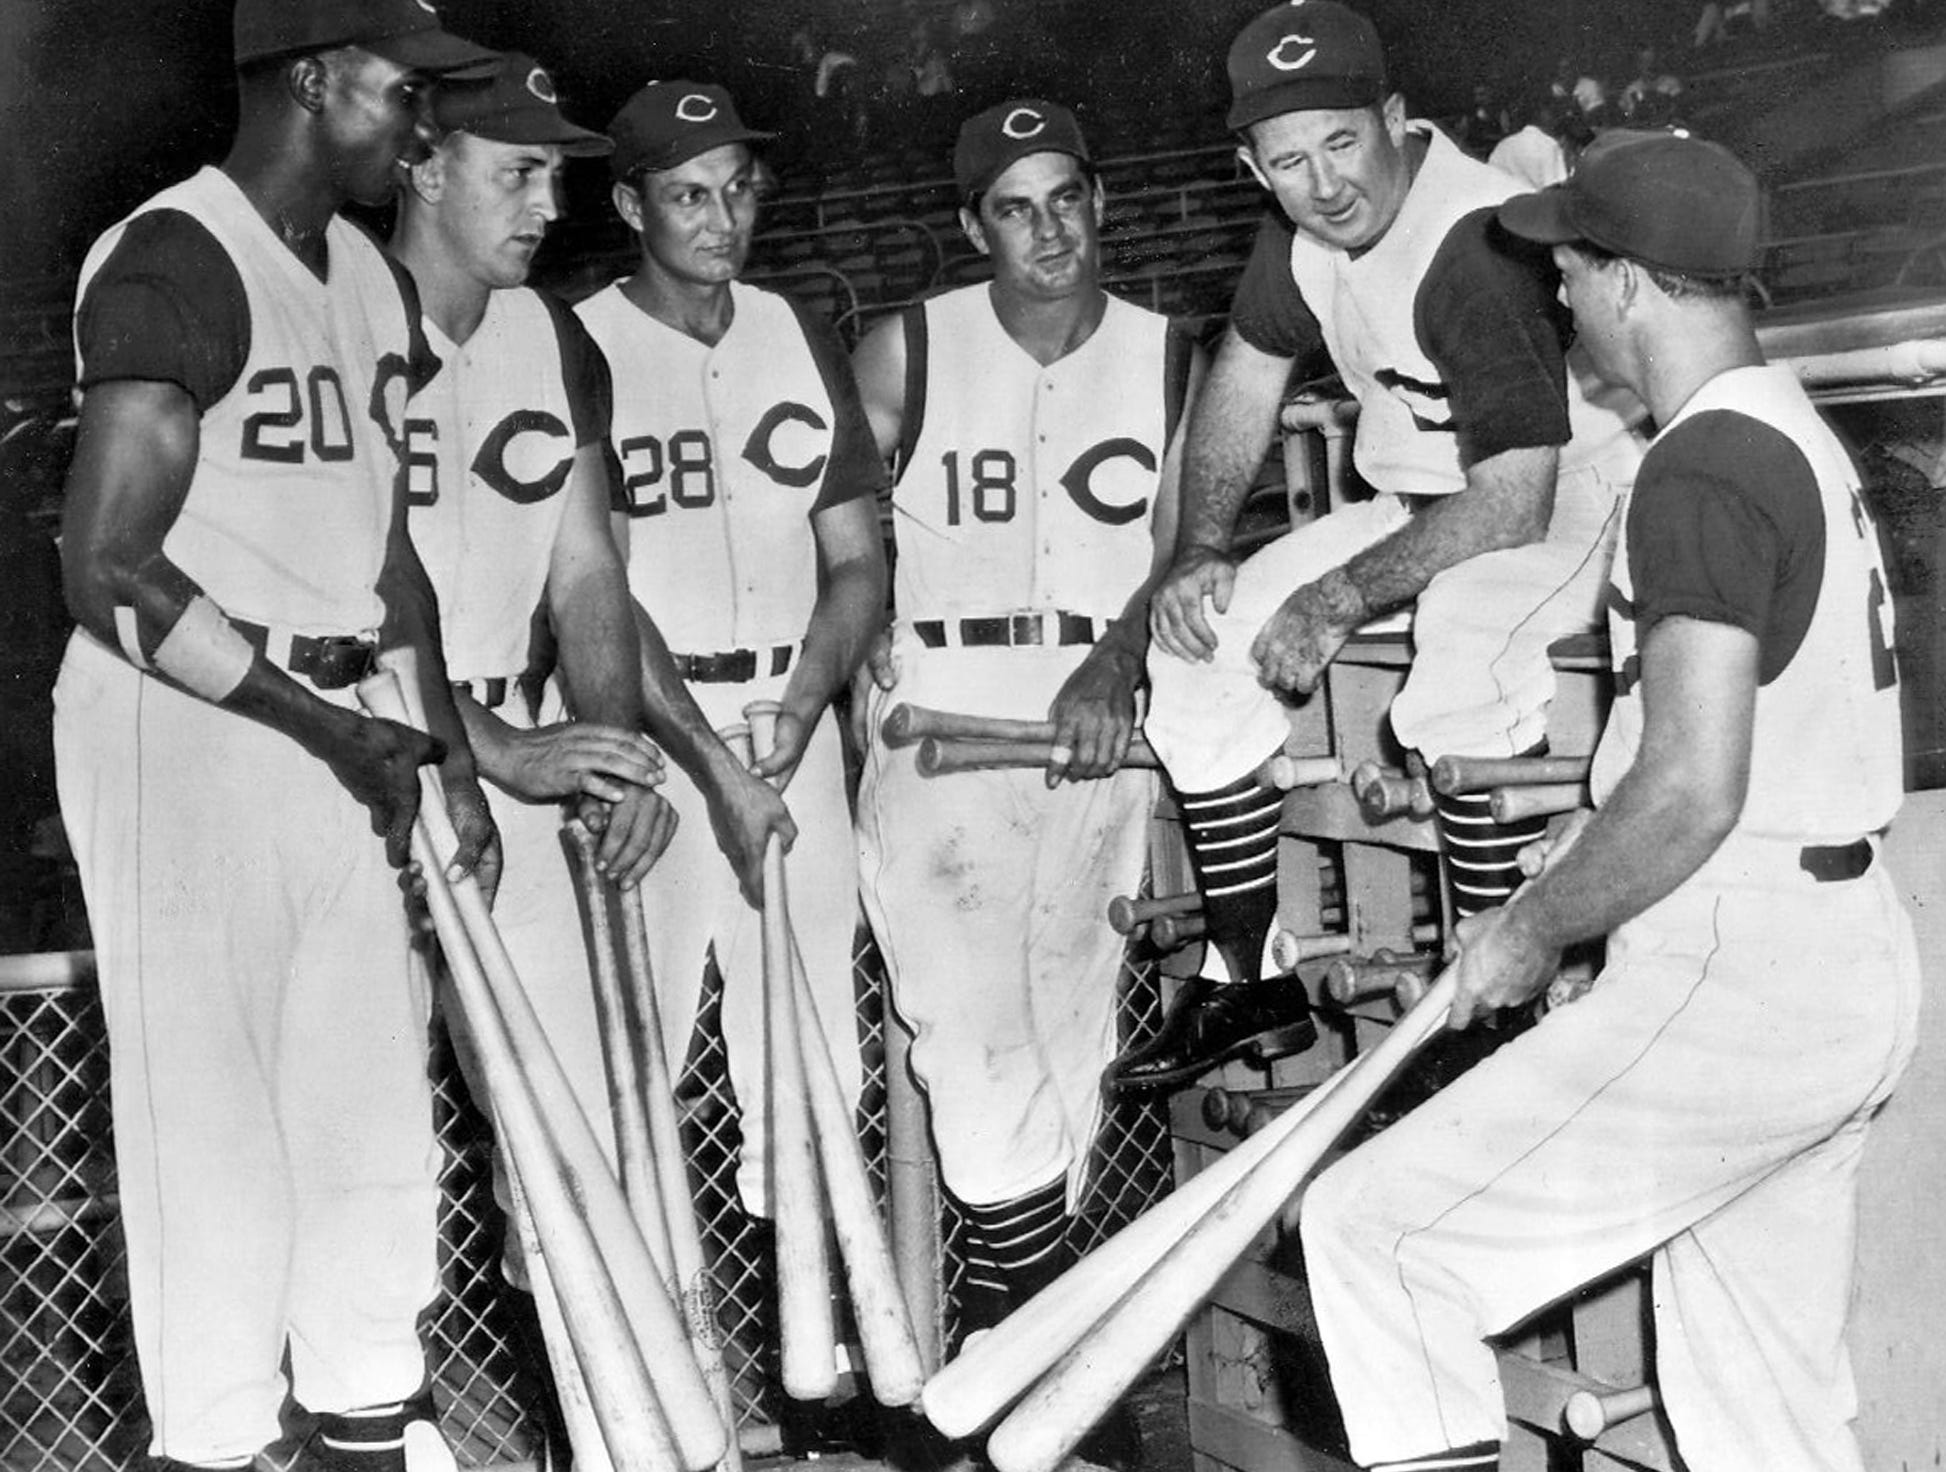 Cincinnati Redlegs manager Birdie Tebbetts perches on bat rack at Crosley Field and holds bull session with his heavy sluggers who have helped him put his team in the front at mid-season in the 1956 National League race. The heavy hitters are, left to right, Frank Robinson, Ed Bailey, Wally Post, Ted Kluszewski and Gus Bell. All except Post played in the All-Star game and did their share to bring victory to the team. AP Photo